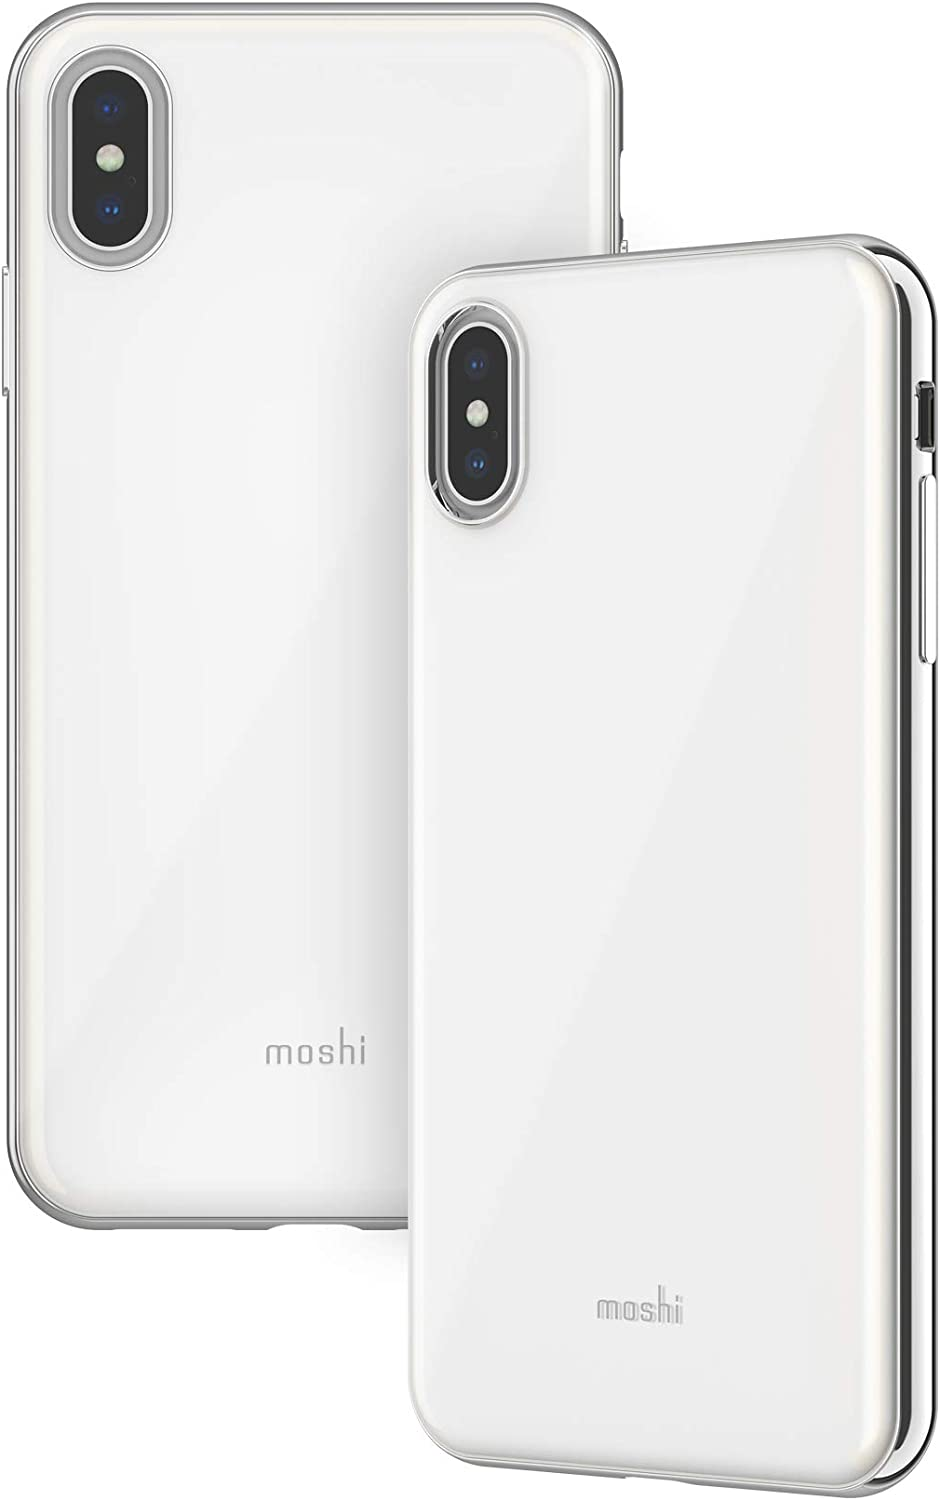 Moshi iGlaze for iPhone Xs Max Case Frame Special sale item Des 6.5-inch Metallic Max 78% OFF